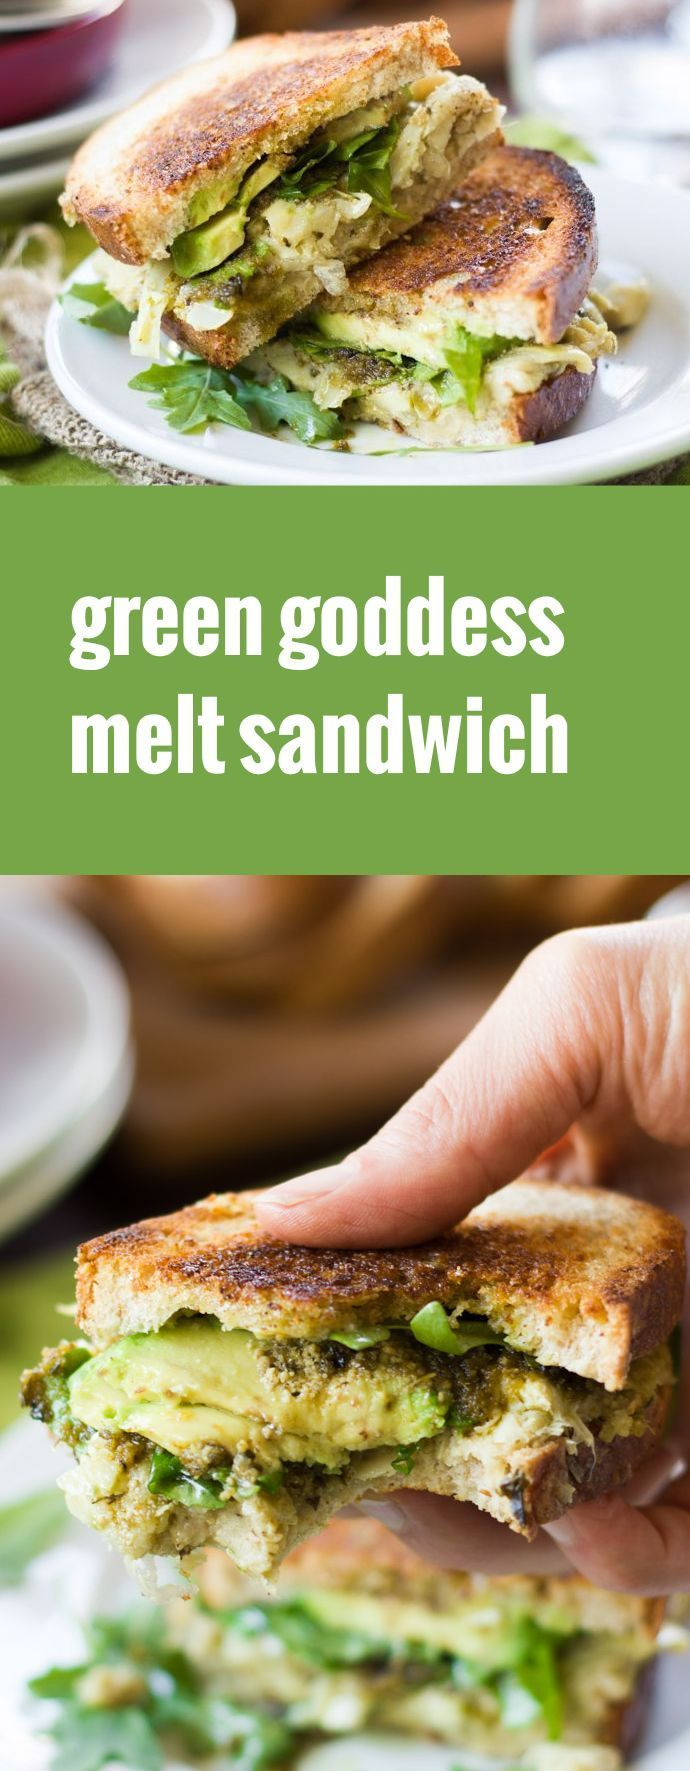 White beans, artichoke hearts, avocado and pesto are stuffed between bread slices and grilled to create these vegan green goddess melt sandwiches.